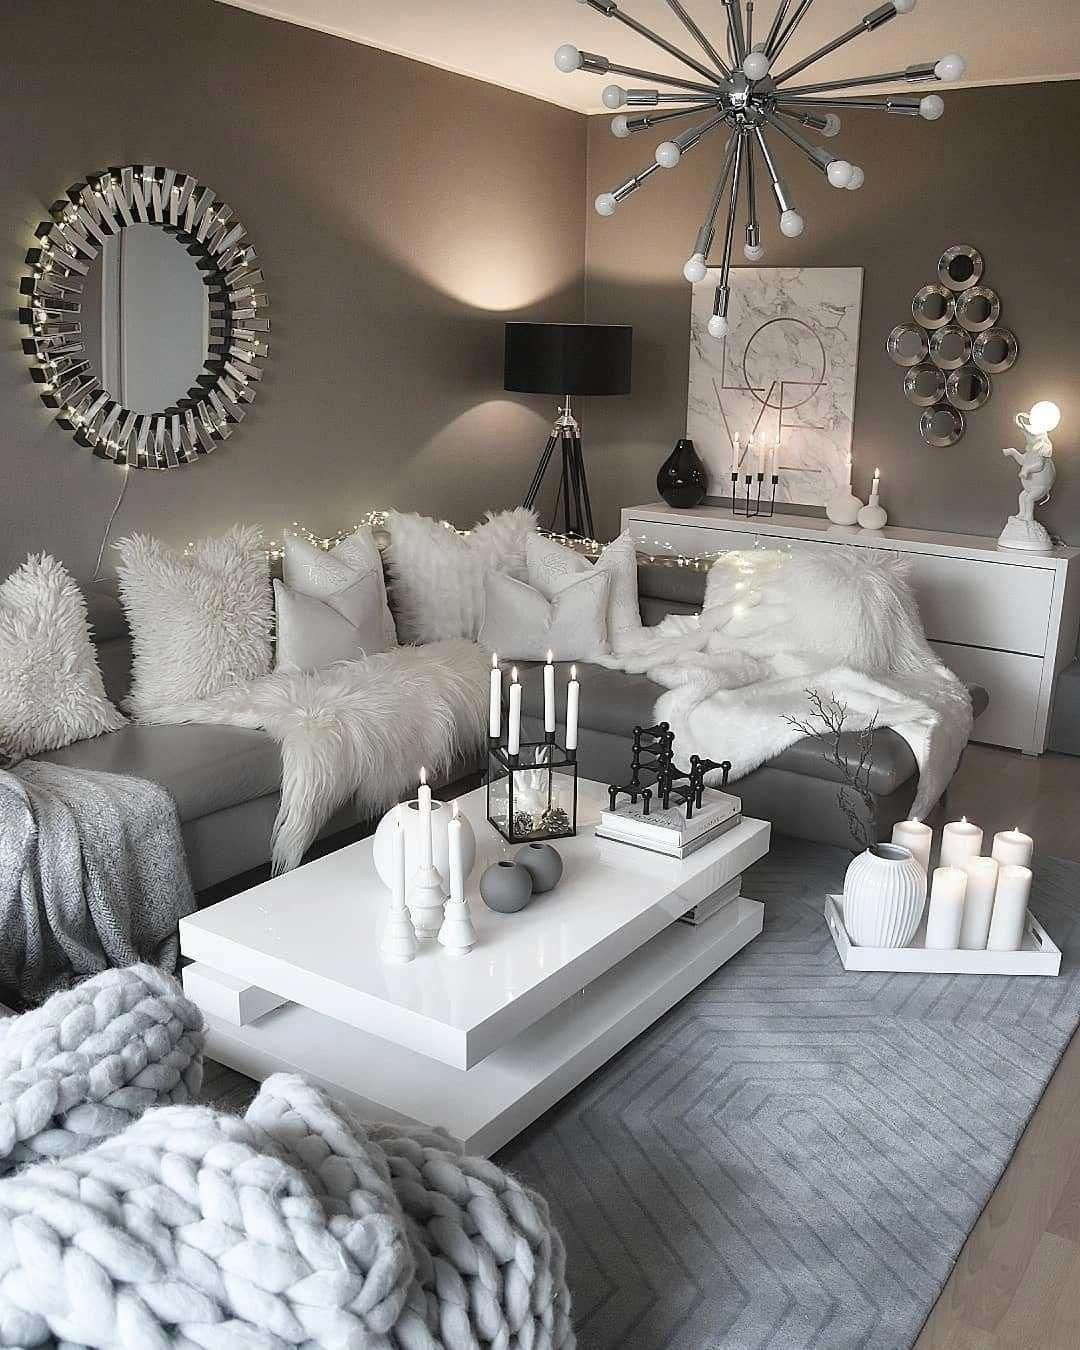 Recreate this white and grey cozy living room decor #livingroom